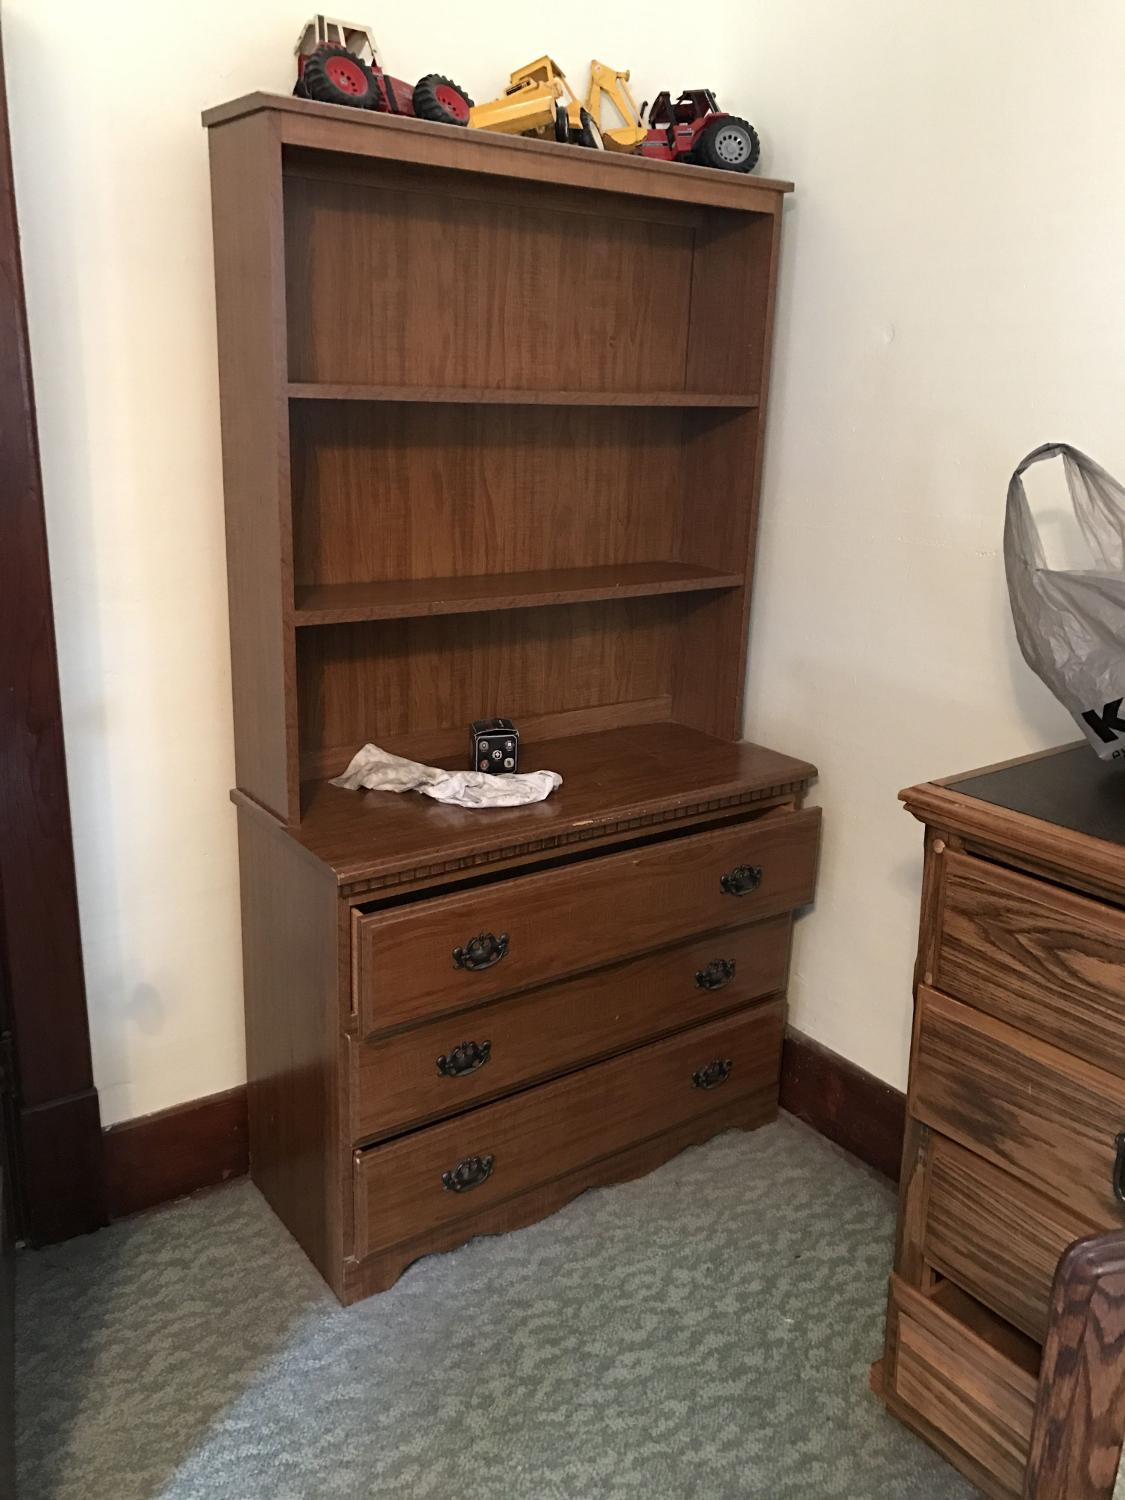 Find More Dresser With Hutch For Sale At Up To 90 Off Champaign Il